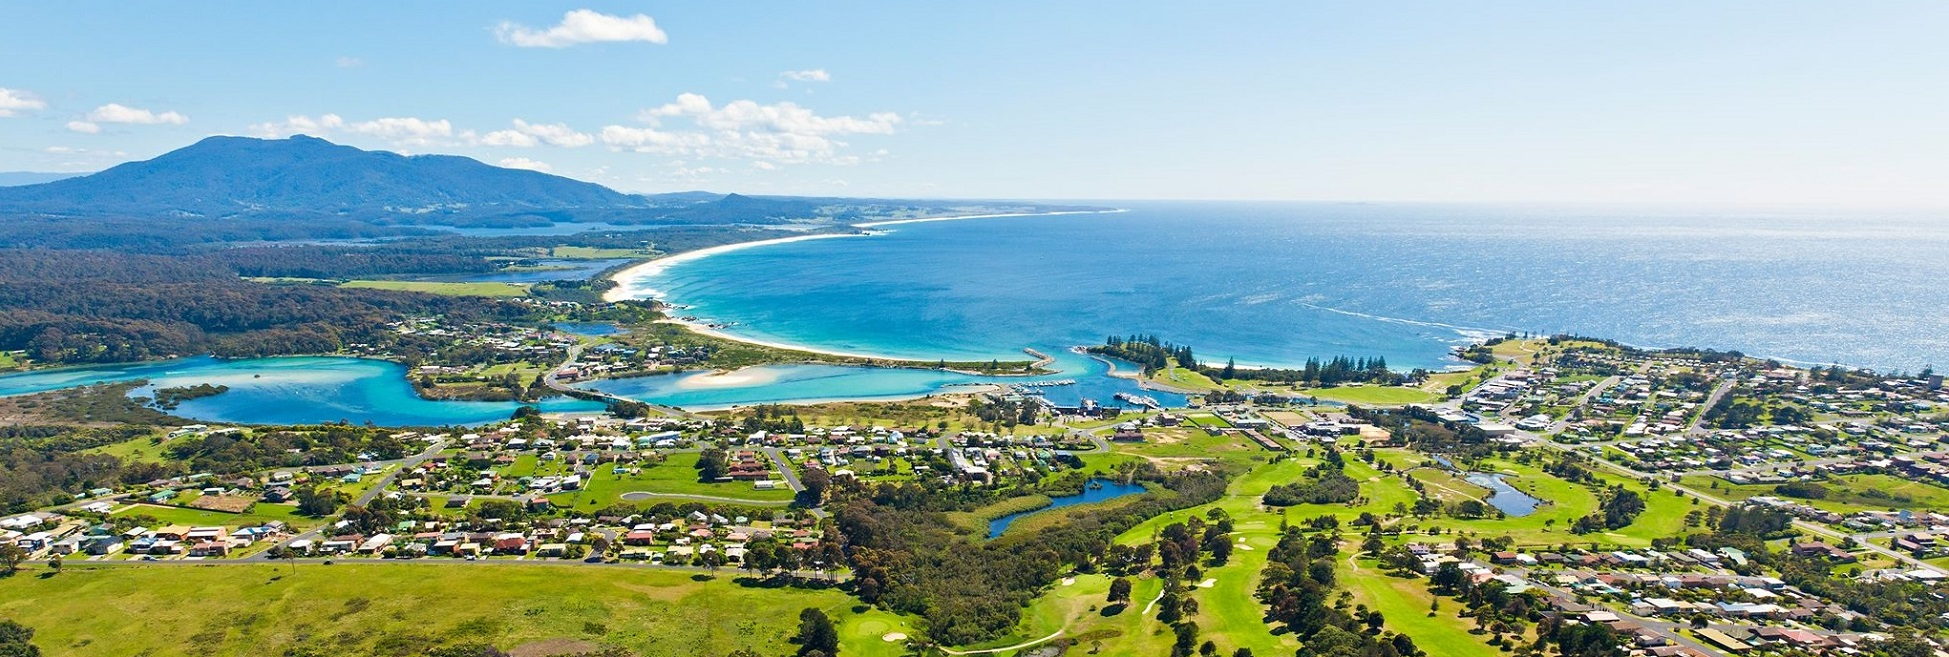 Getting here Bermagui aerial golf course cropped.jpg